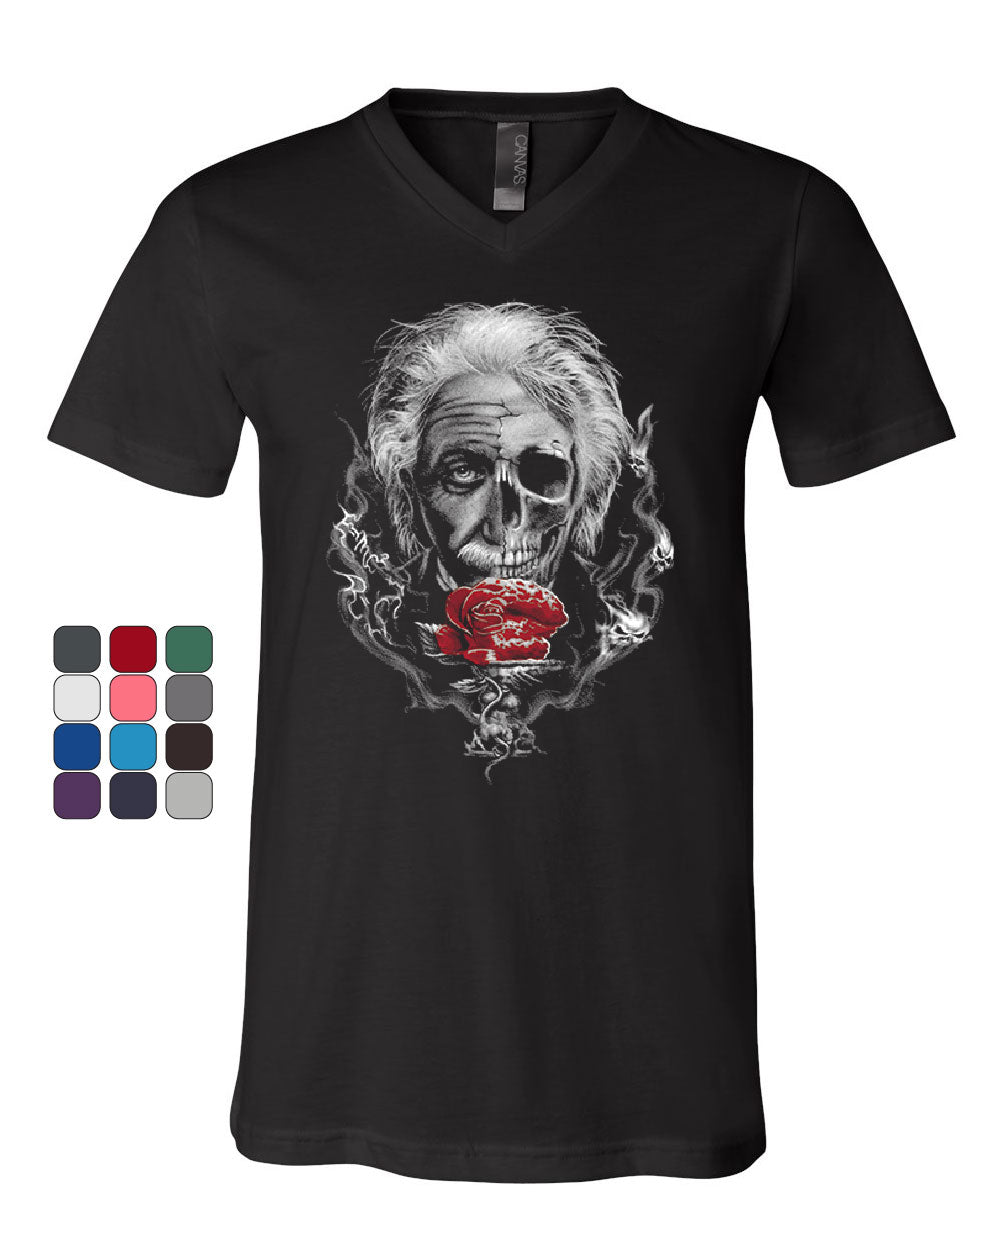 a64d3ab4fa53 Albert Einstein Skull Face V-Neck T-Shirt Urban Rose Genius Scientist Tee